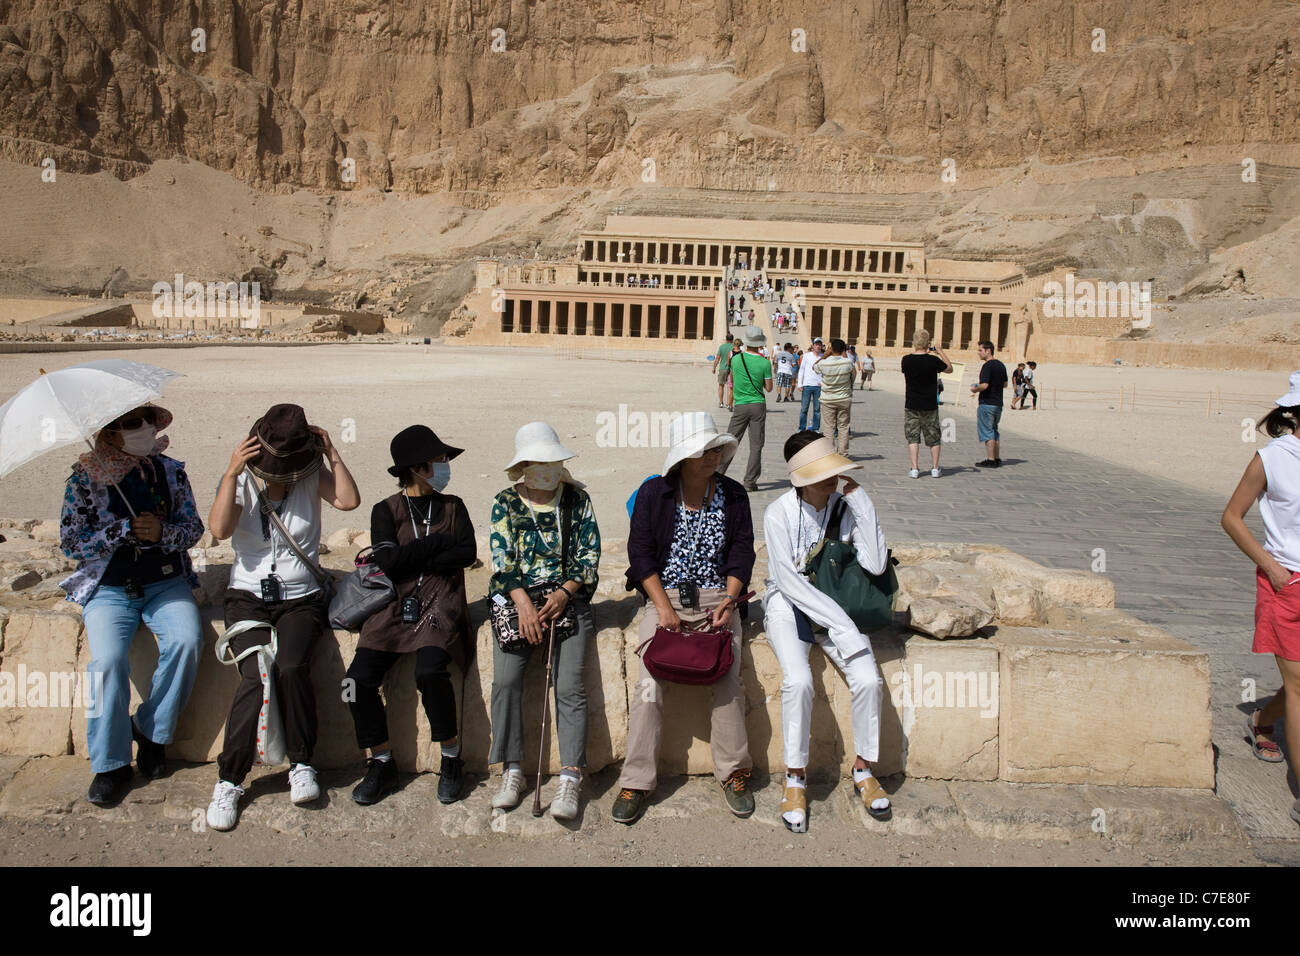 Japanese tourists wearing surgical face masks at the Temple of Hatshepsut, Luxor, Egypt Stock Photo